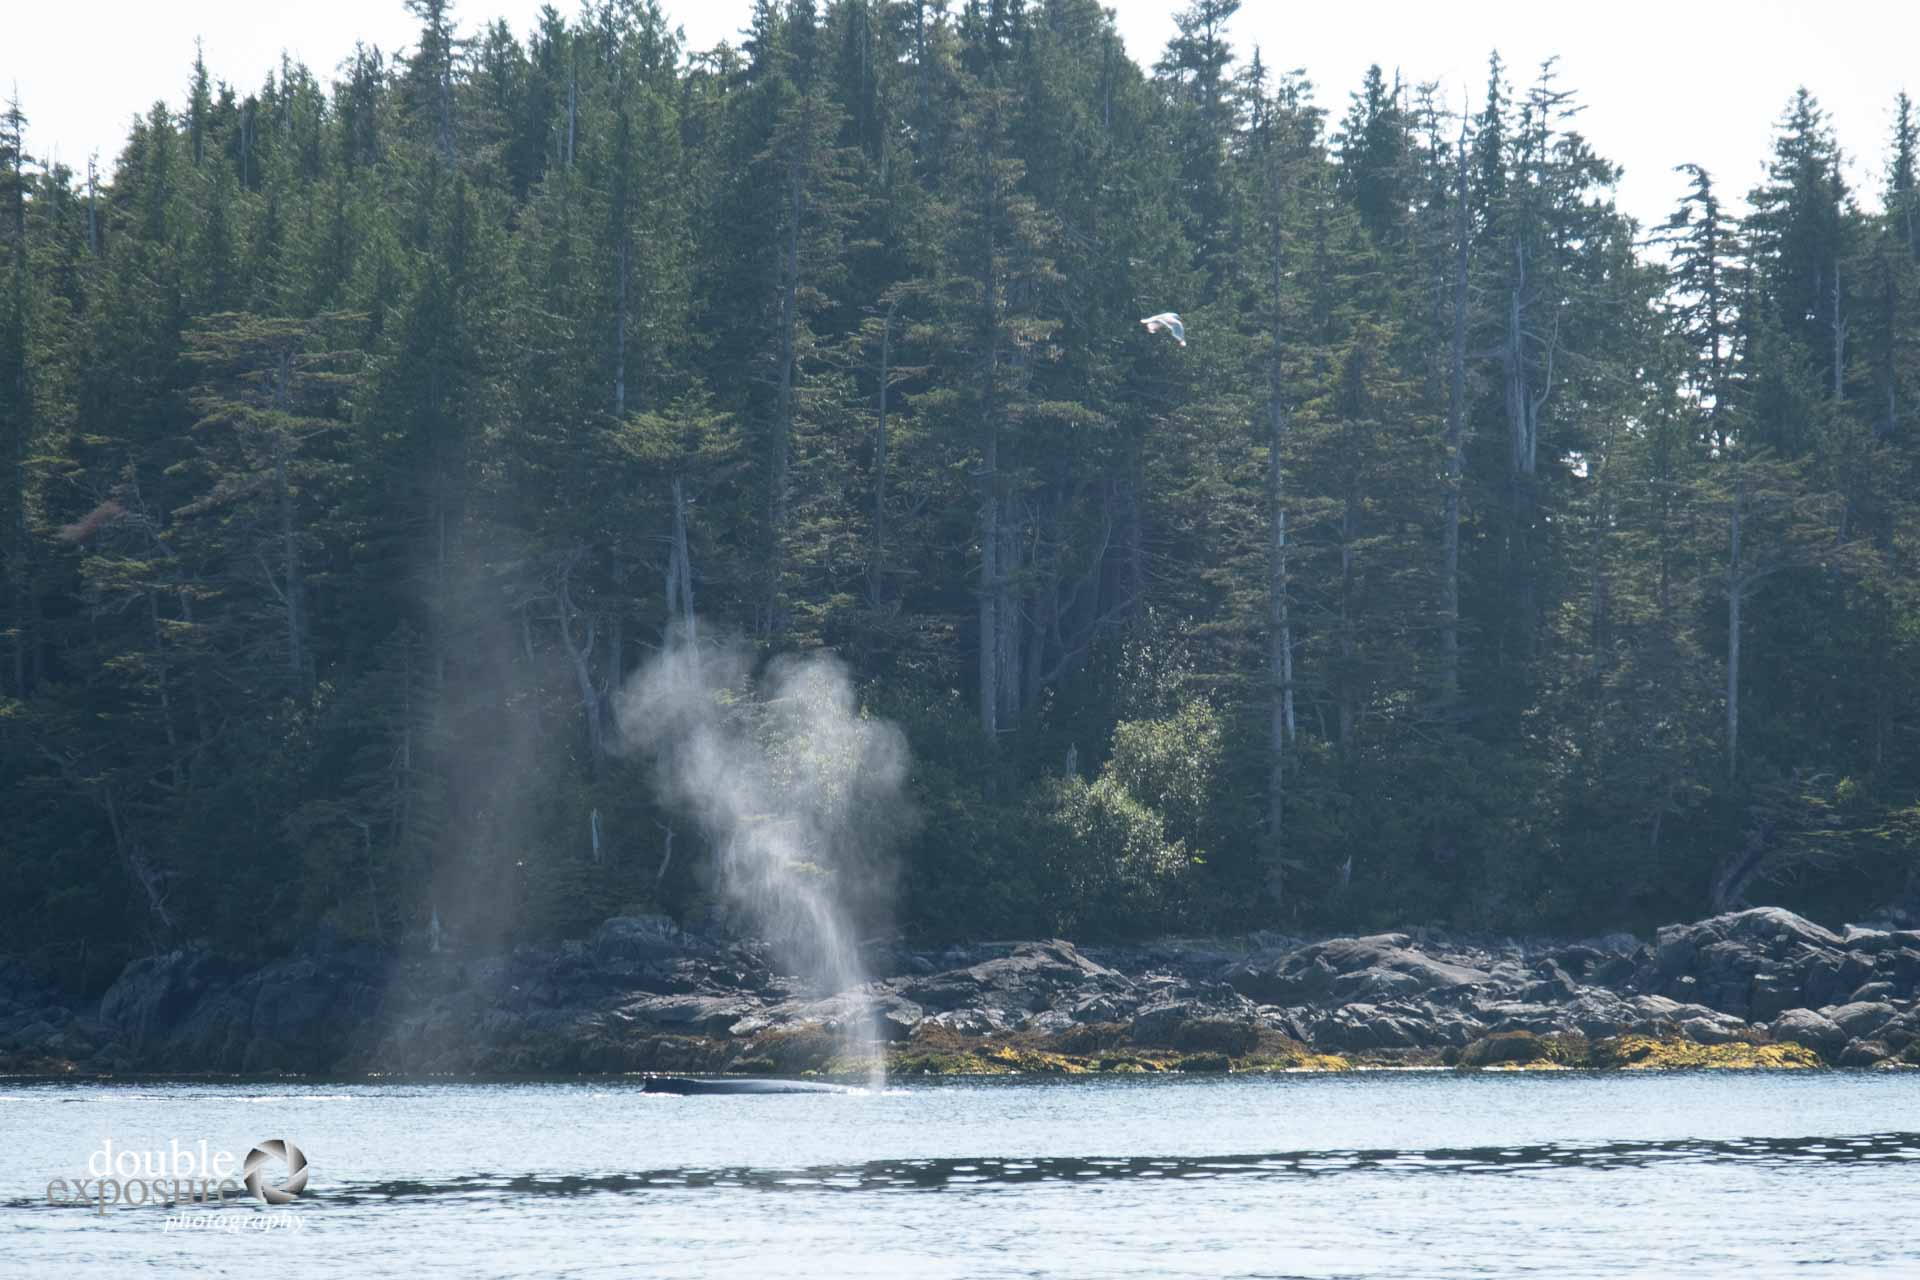 Humpback whales feeding close to shore